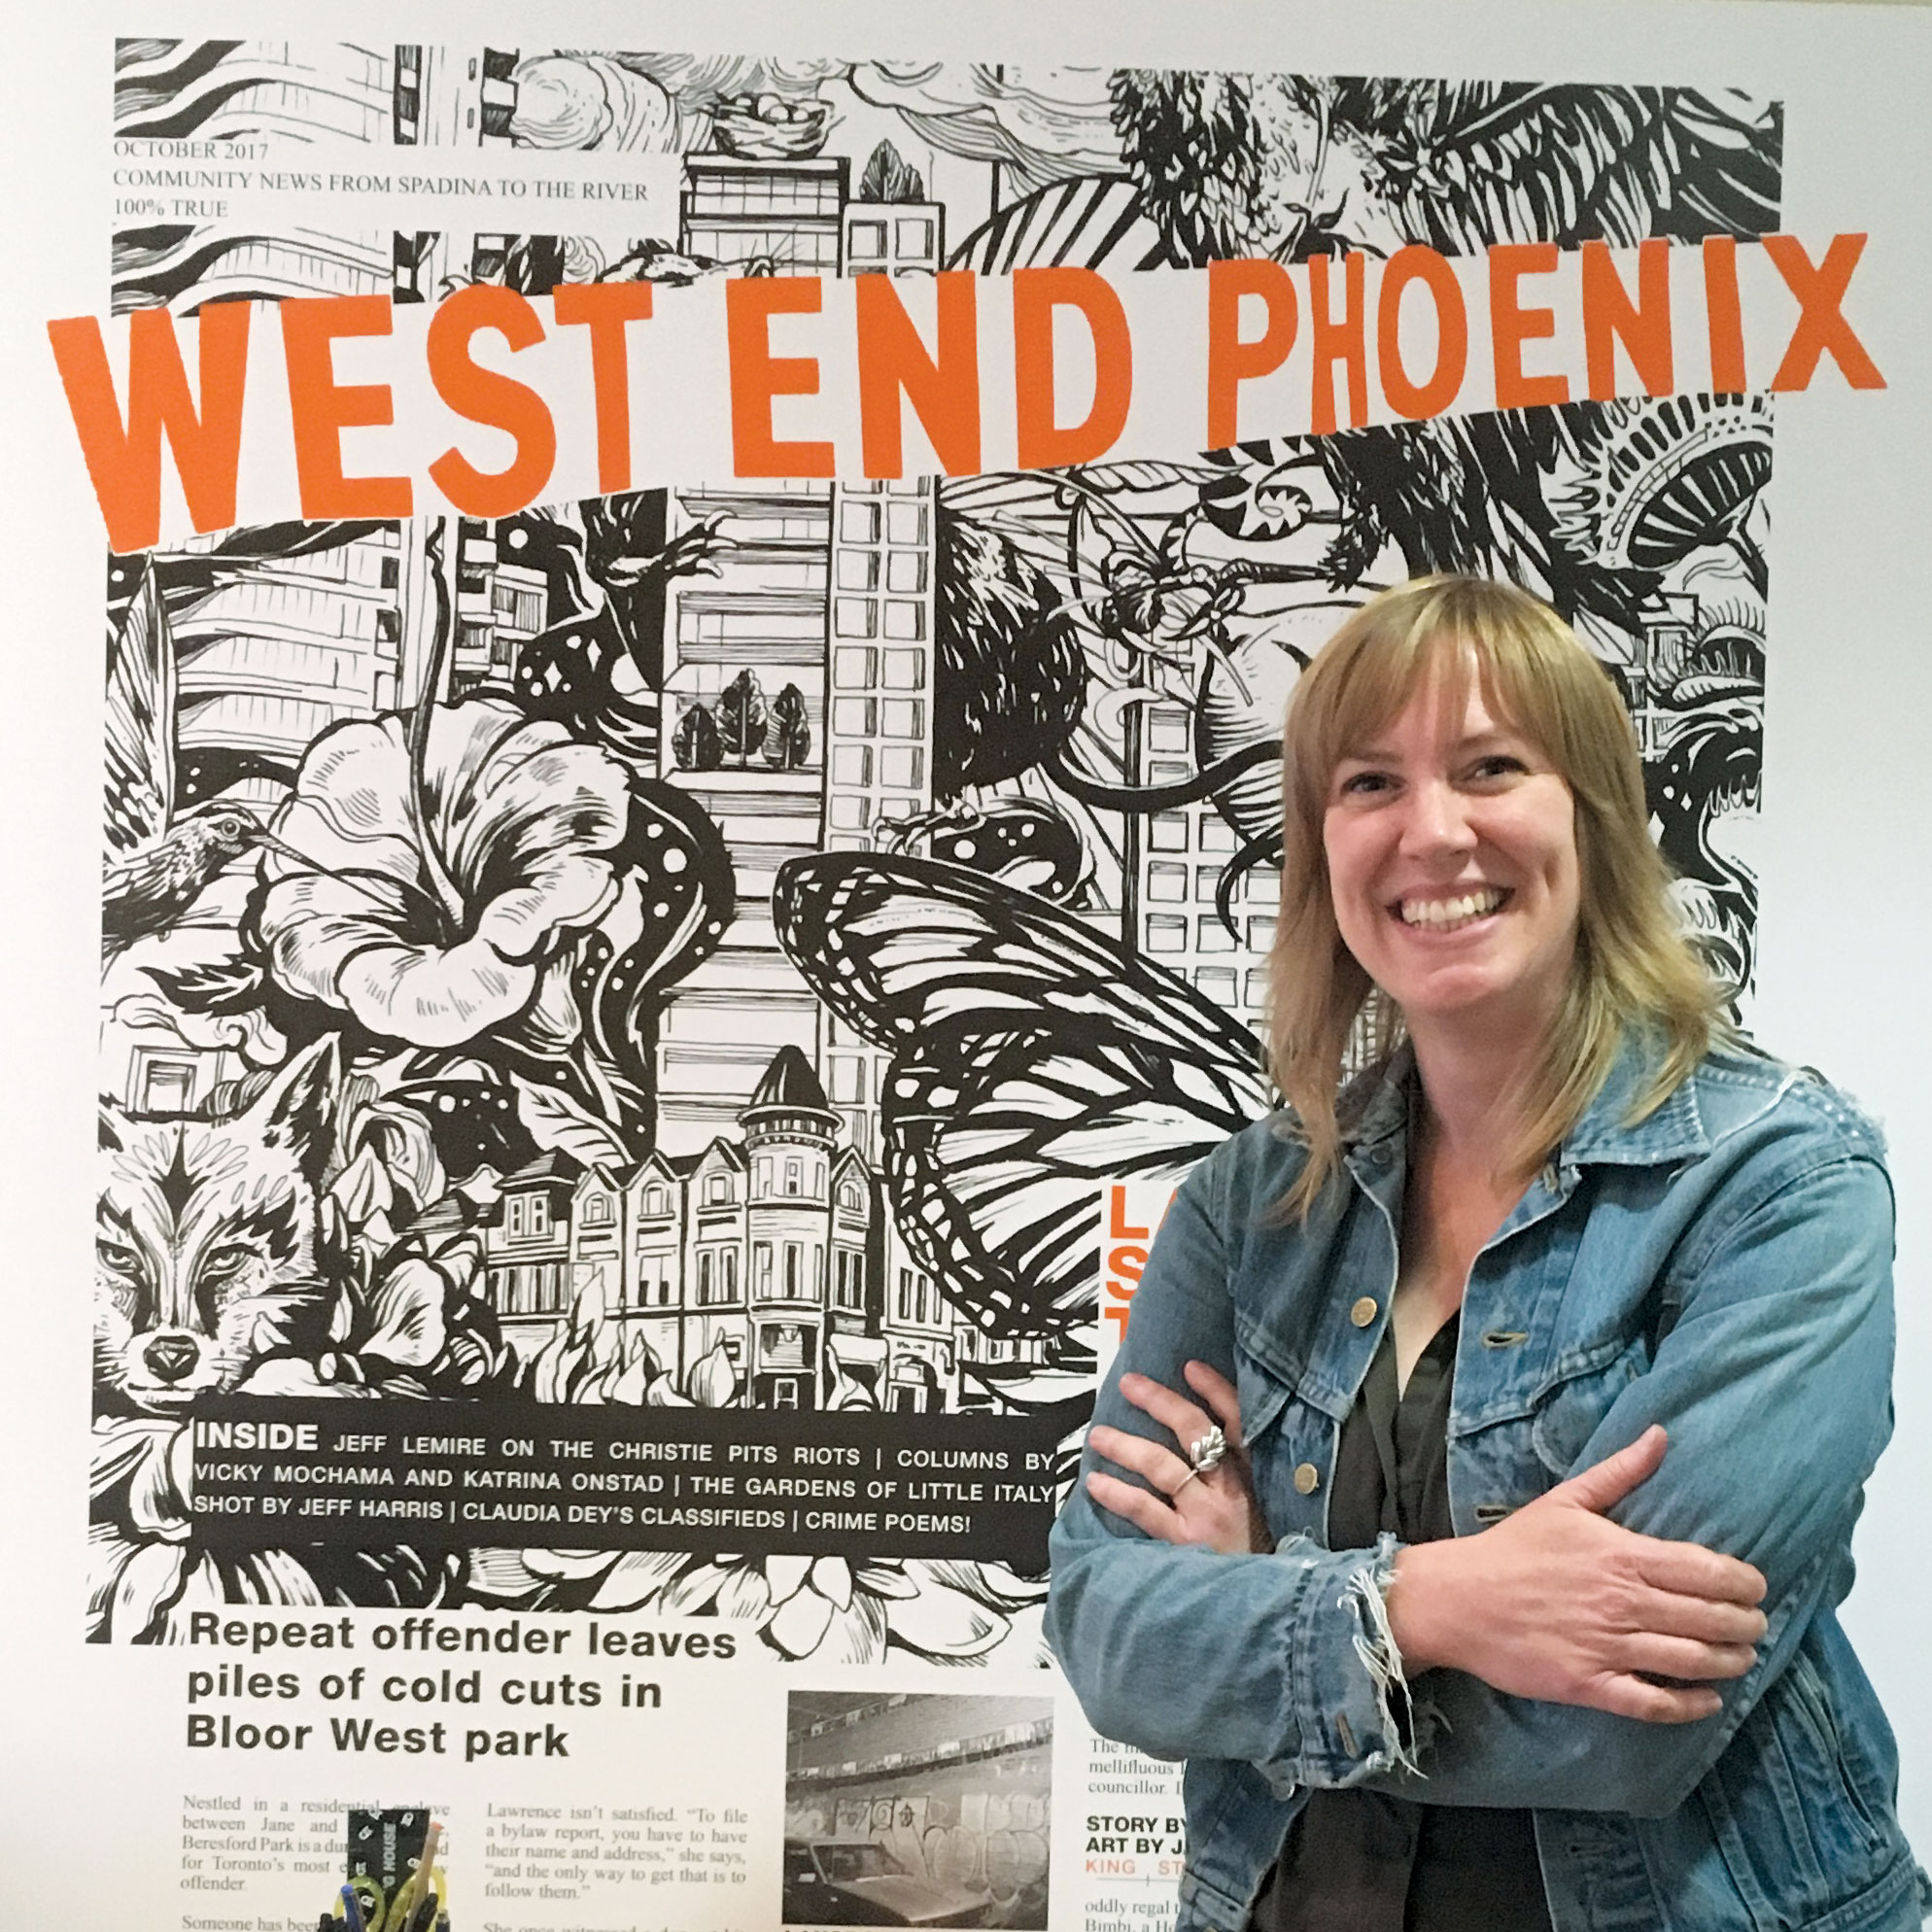 Robyn-Colangelo-West-End-Phoenix-Oct-2017.jpg